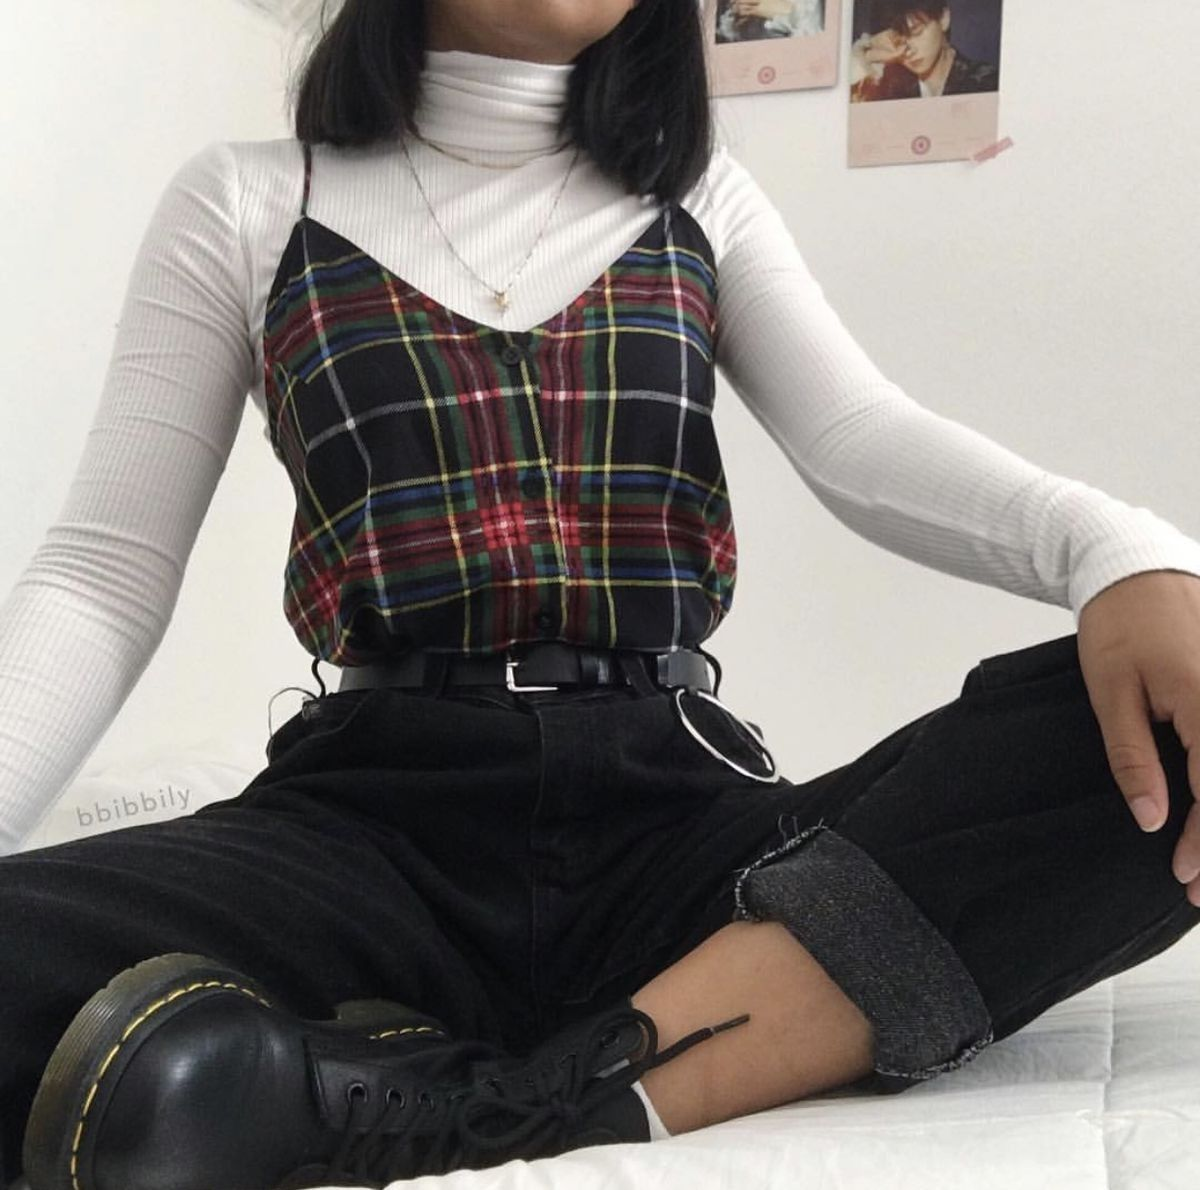 ♡𝘒𝘦𝘯𝘯𝘢𝘳𝘢𝘦𝘭𝘦𝘰𝘯𝘢𝘳𝘥♡ 𝘪𝘨: 𝘬𝘦𝘯𝘯𝘢𝘭𝘦𝘰𝘯𝘢𝘳𝘥_ | Aesthetic clothes ...